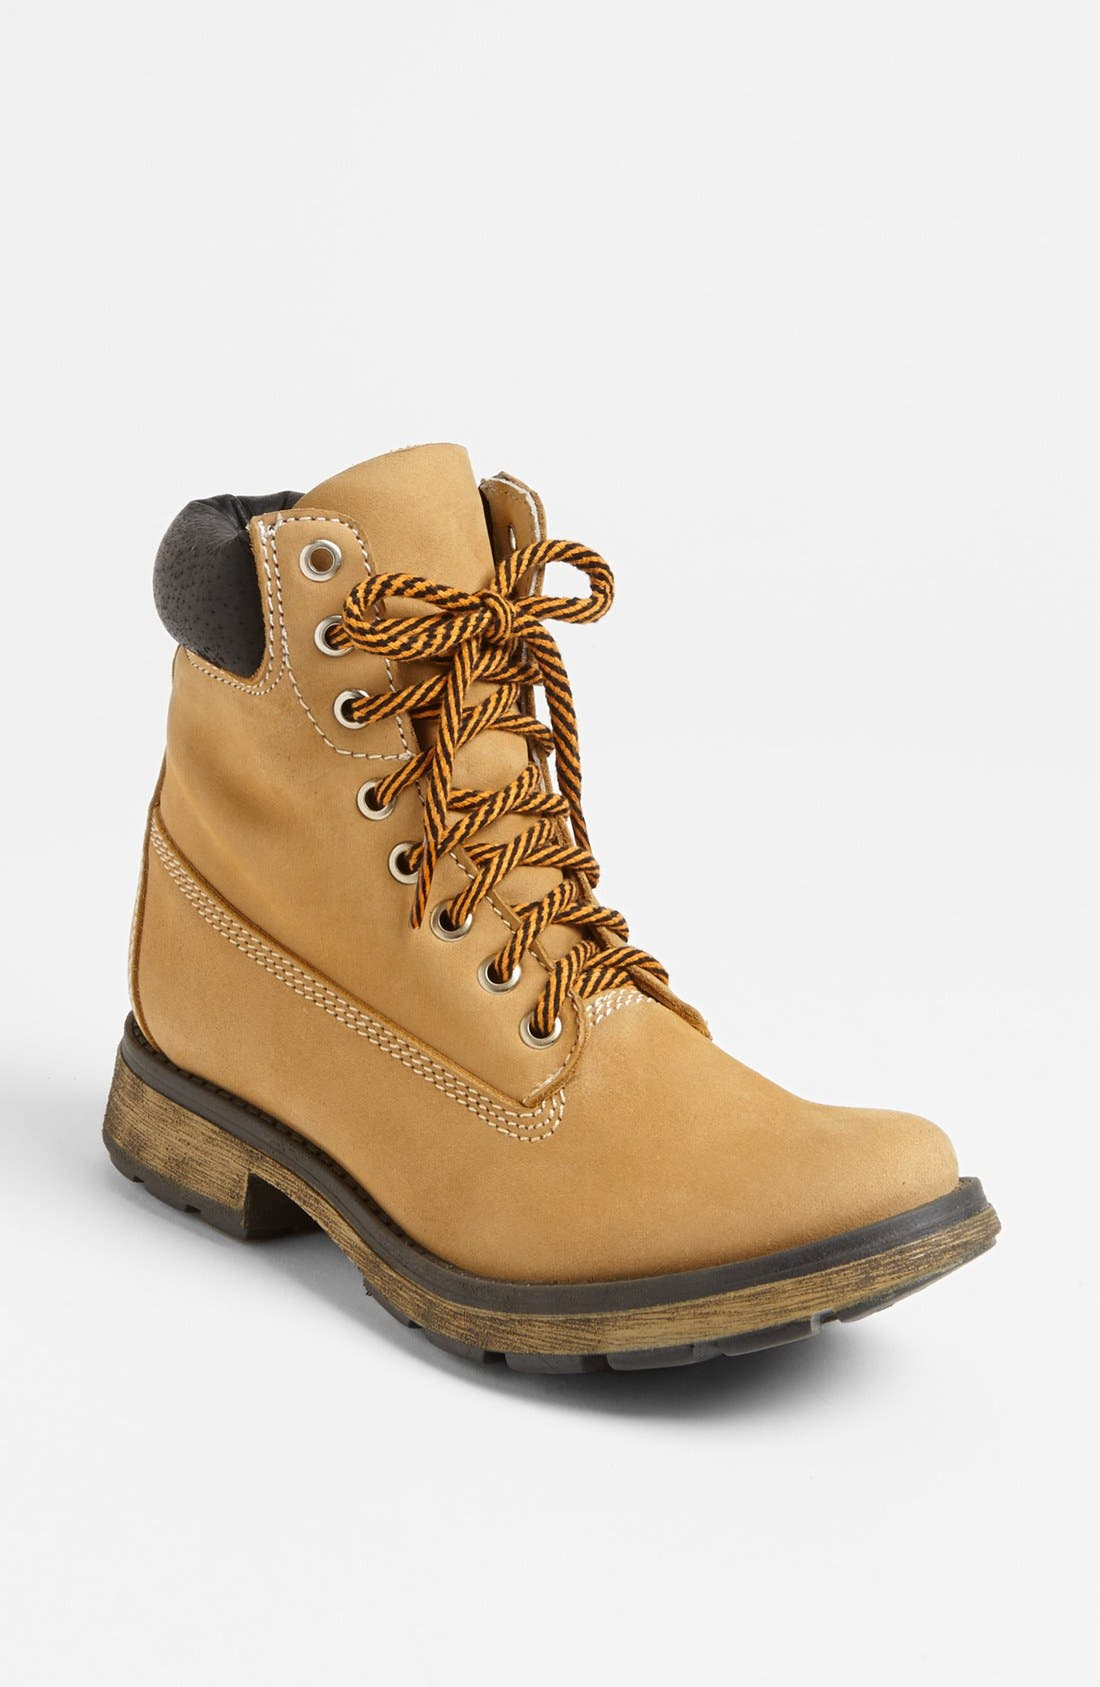 Alternate Image 1 Selected - Steve Madden 'ASAP' Boot